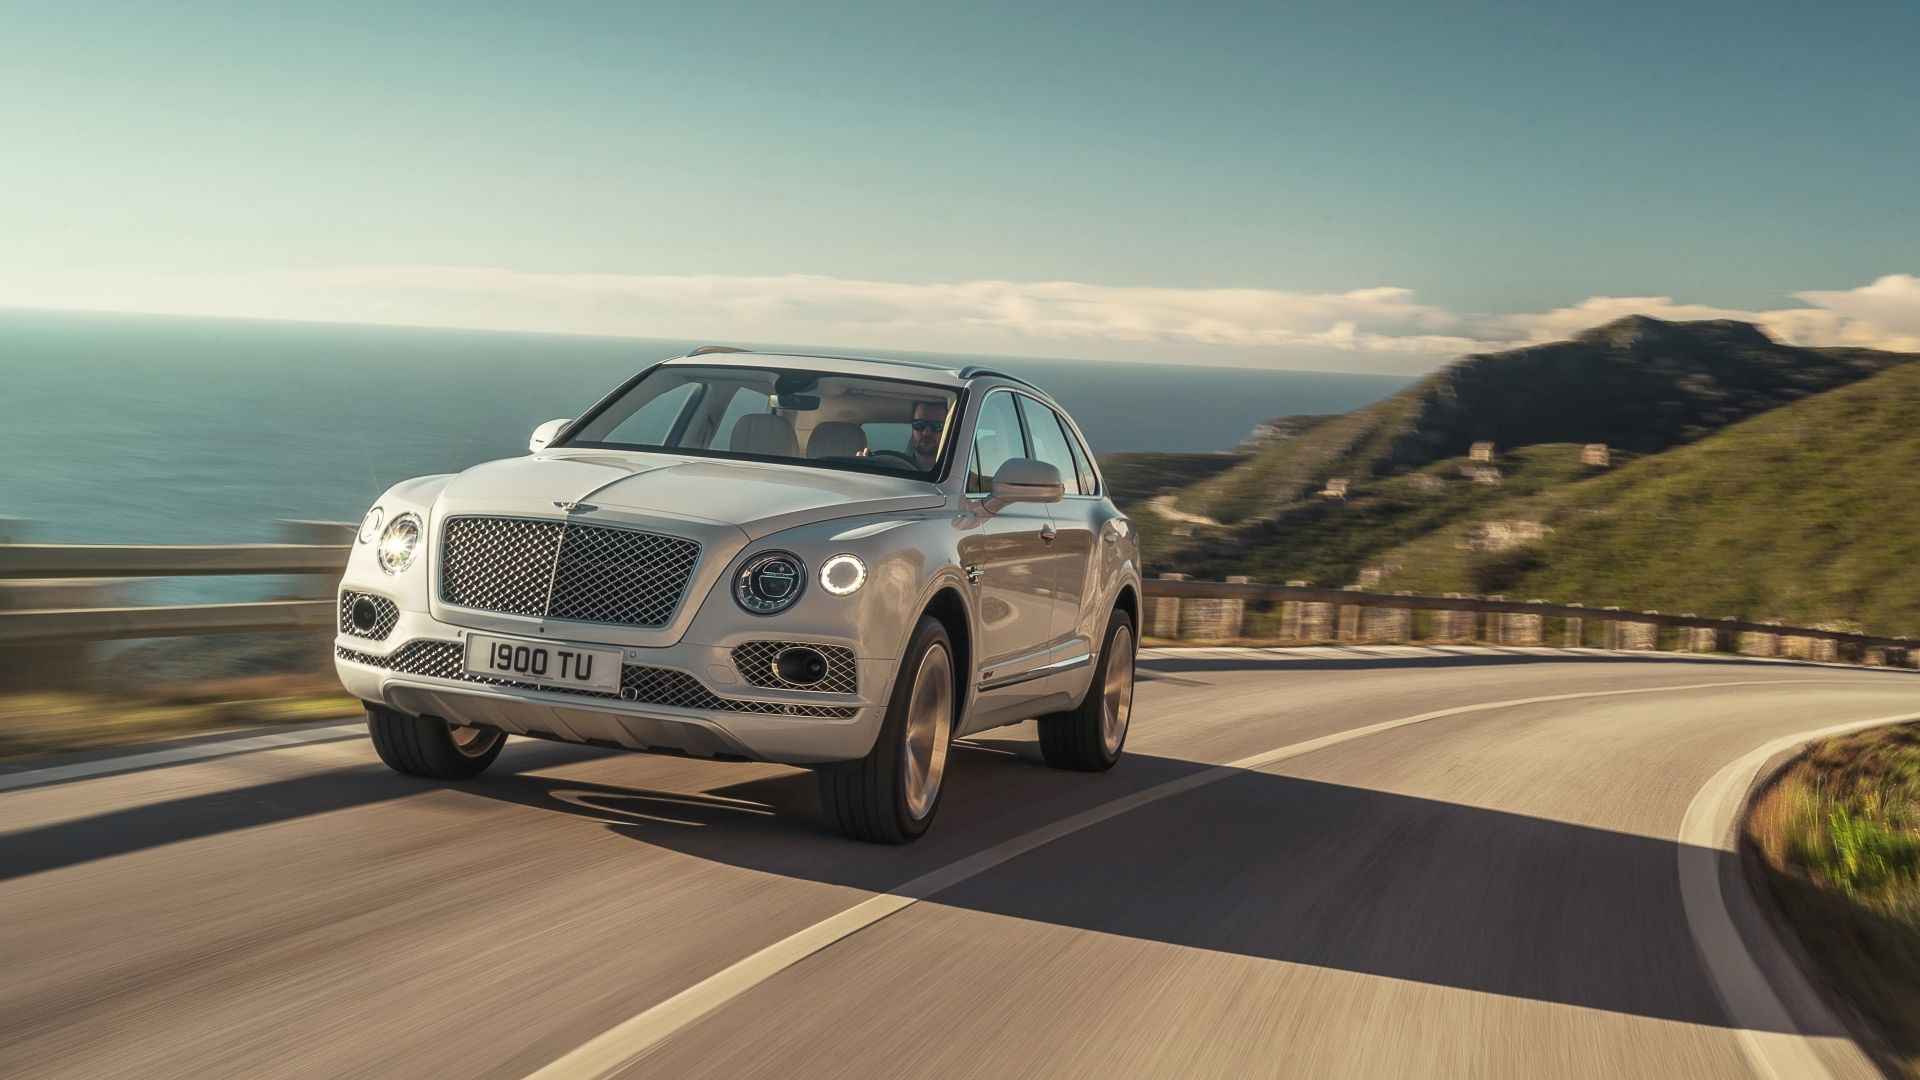 Wallpaper Bentley Bentayga Hybrid, Geneva Motor Show 2018